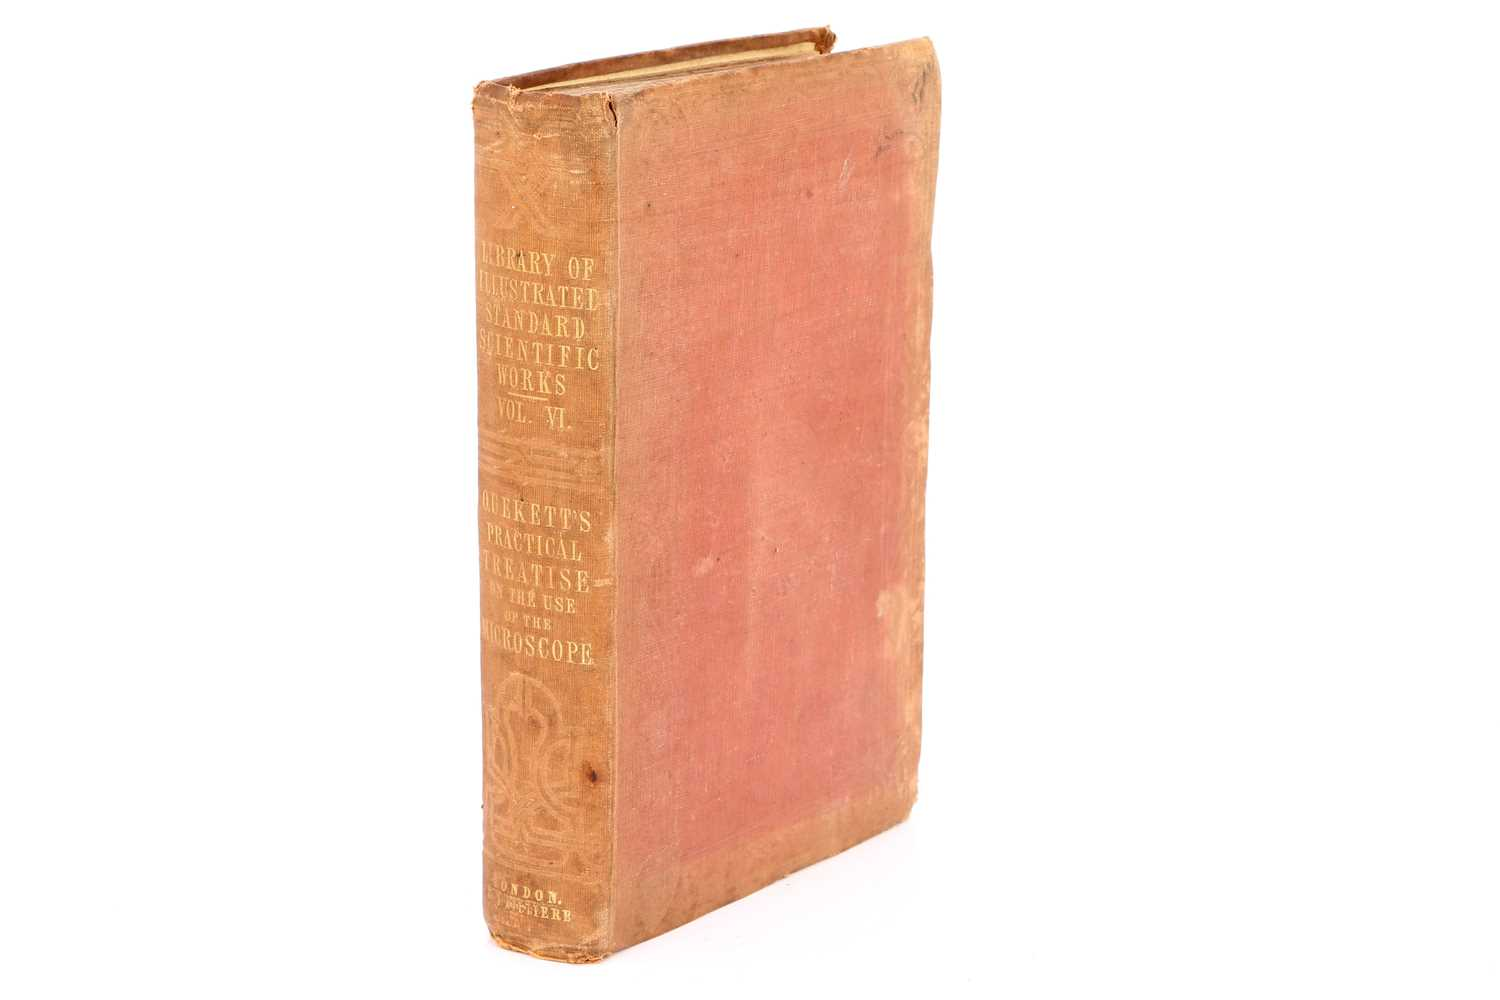 Lot 3-A Presentation Copy of Quekett's Practical Treatise on the Use of the Microscope